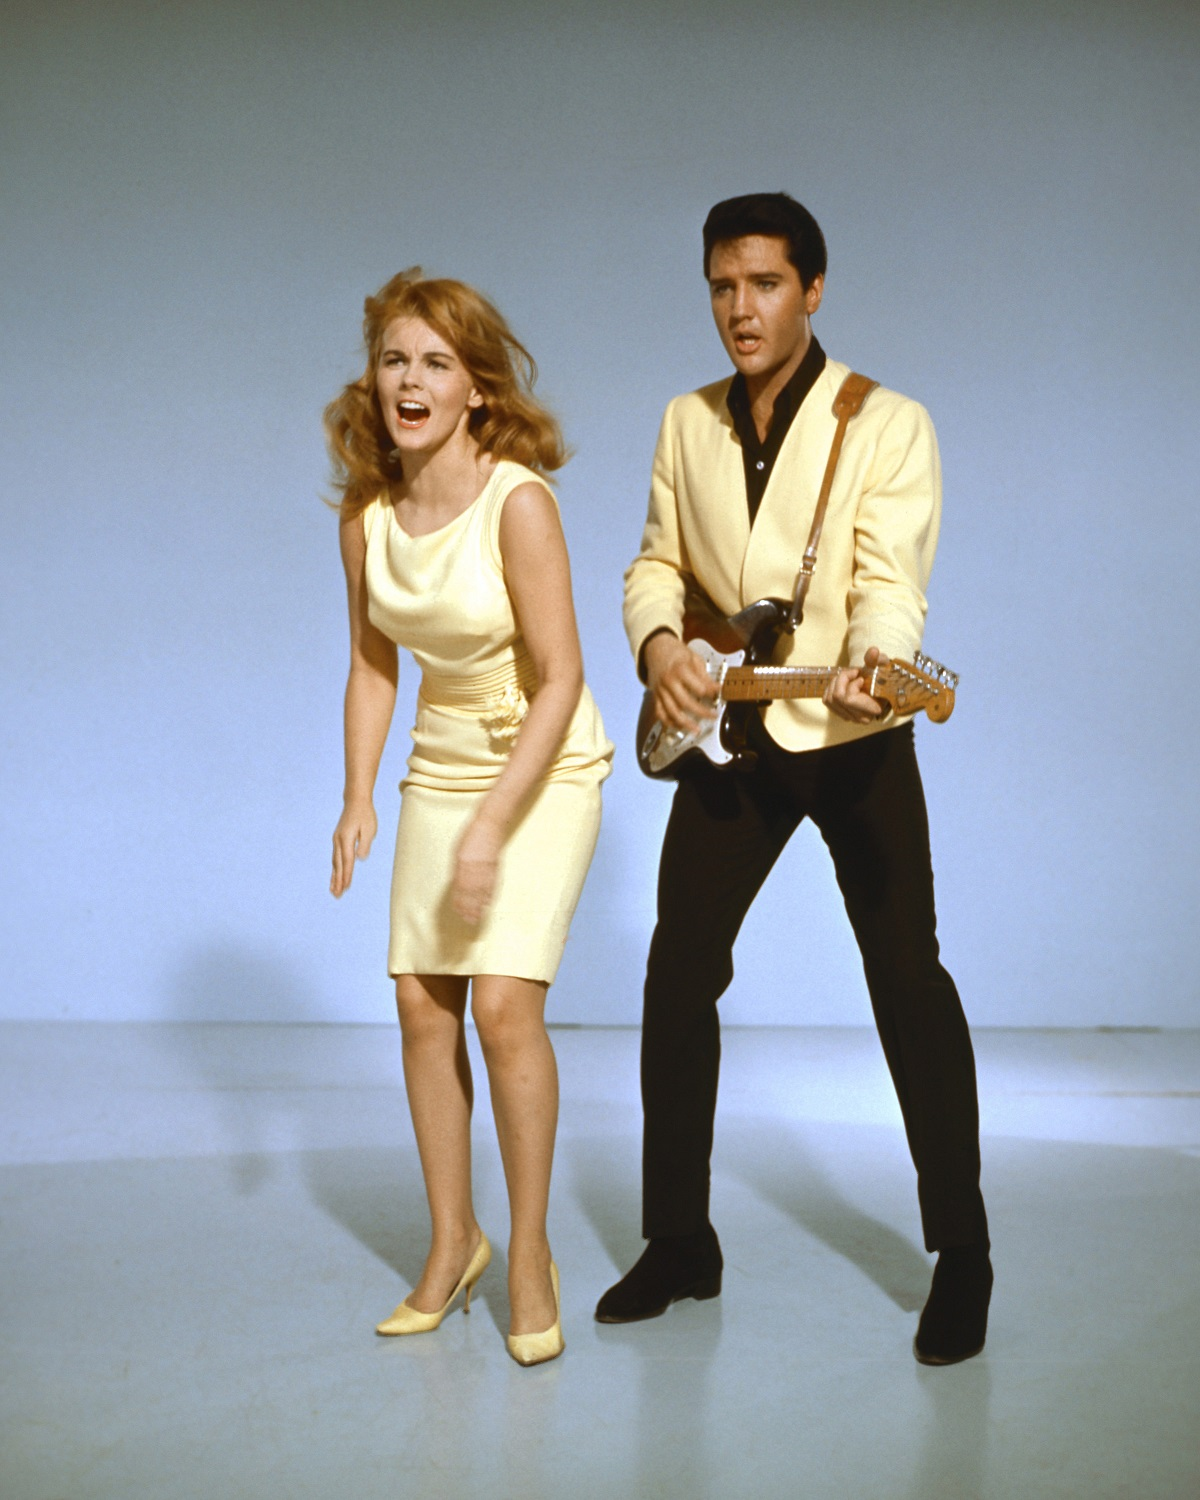 Elvis Presley with a guitar and Ann-Margret singing in a publicity shot for 'Viva Las Vegas'